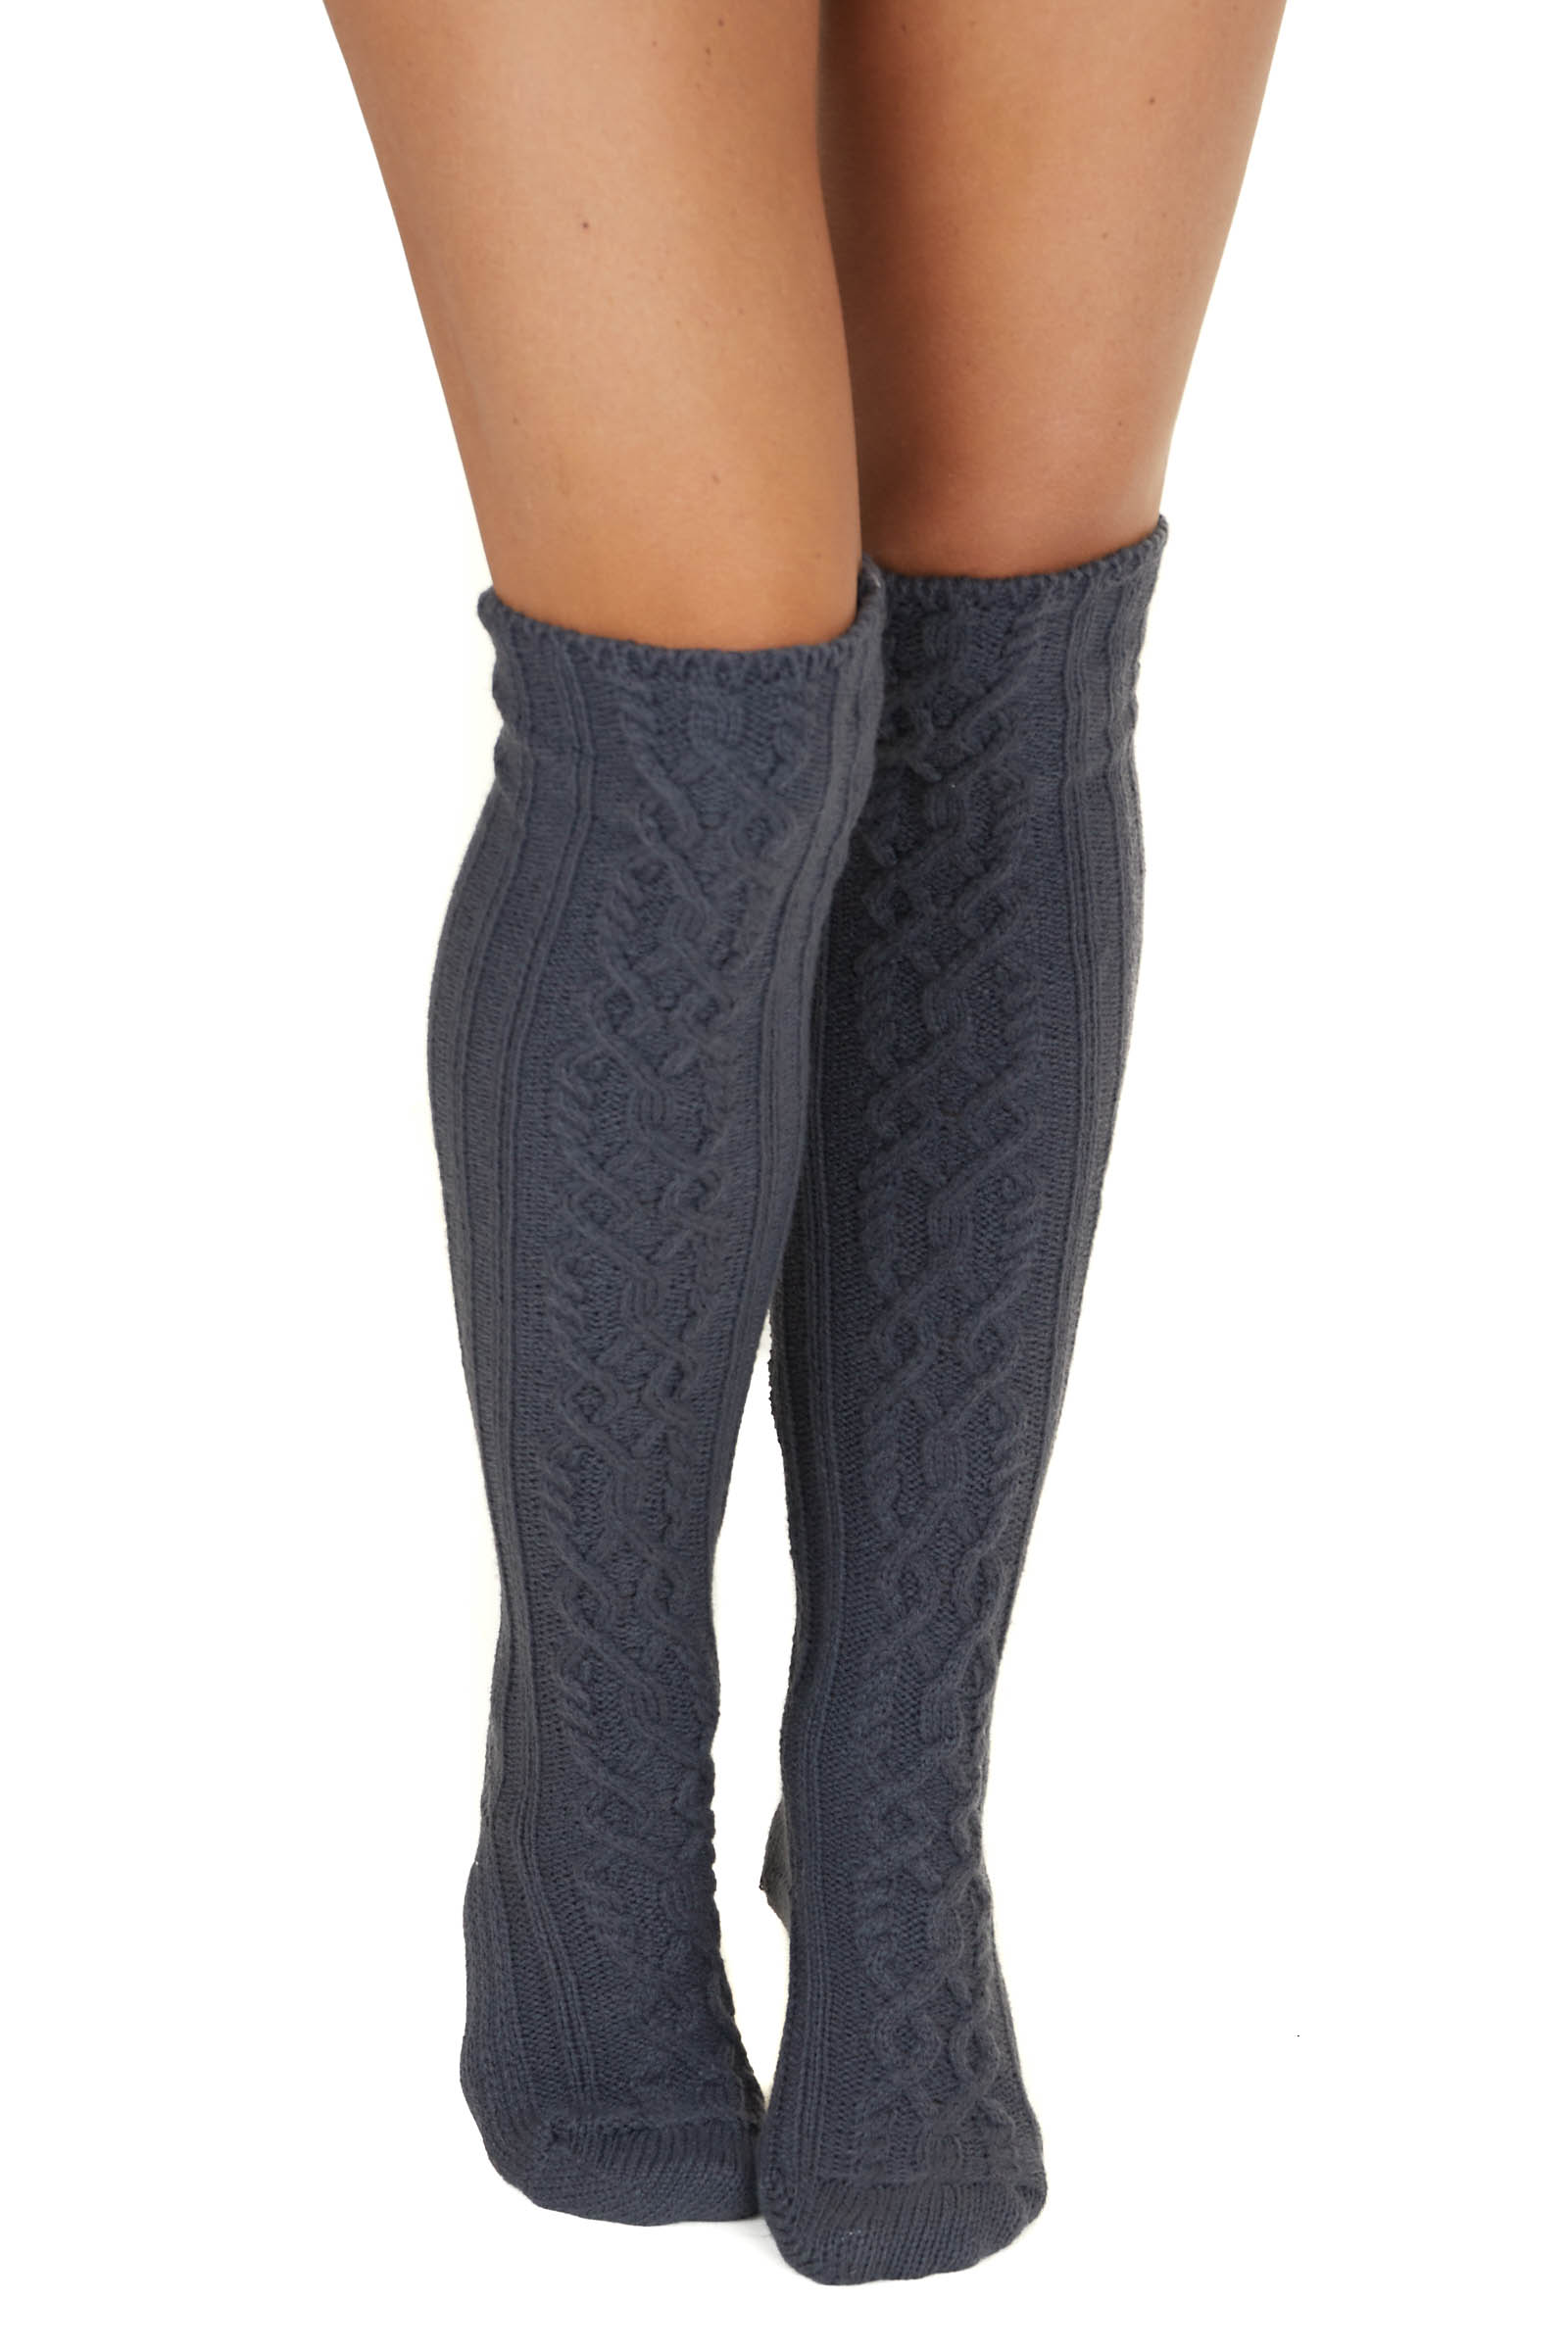 Charcoal Grey Cable Knit Textured Knee High Cozy Socks